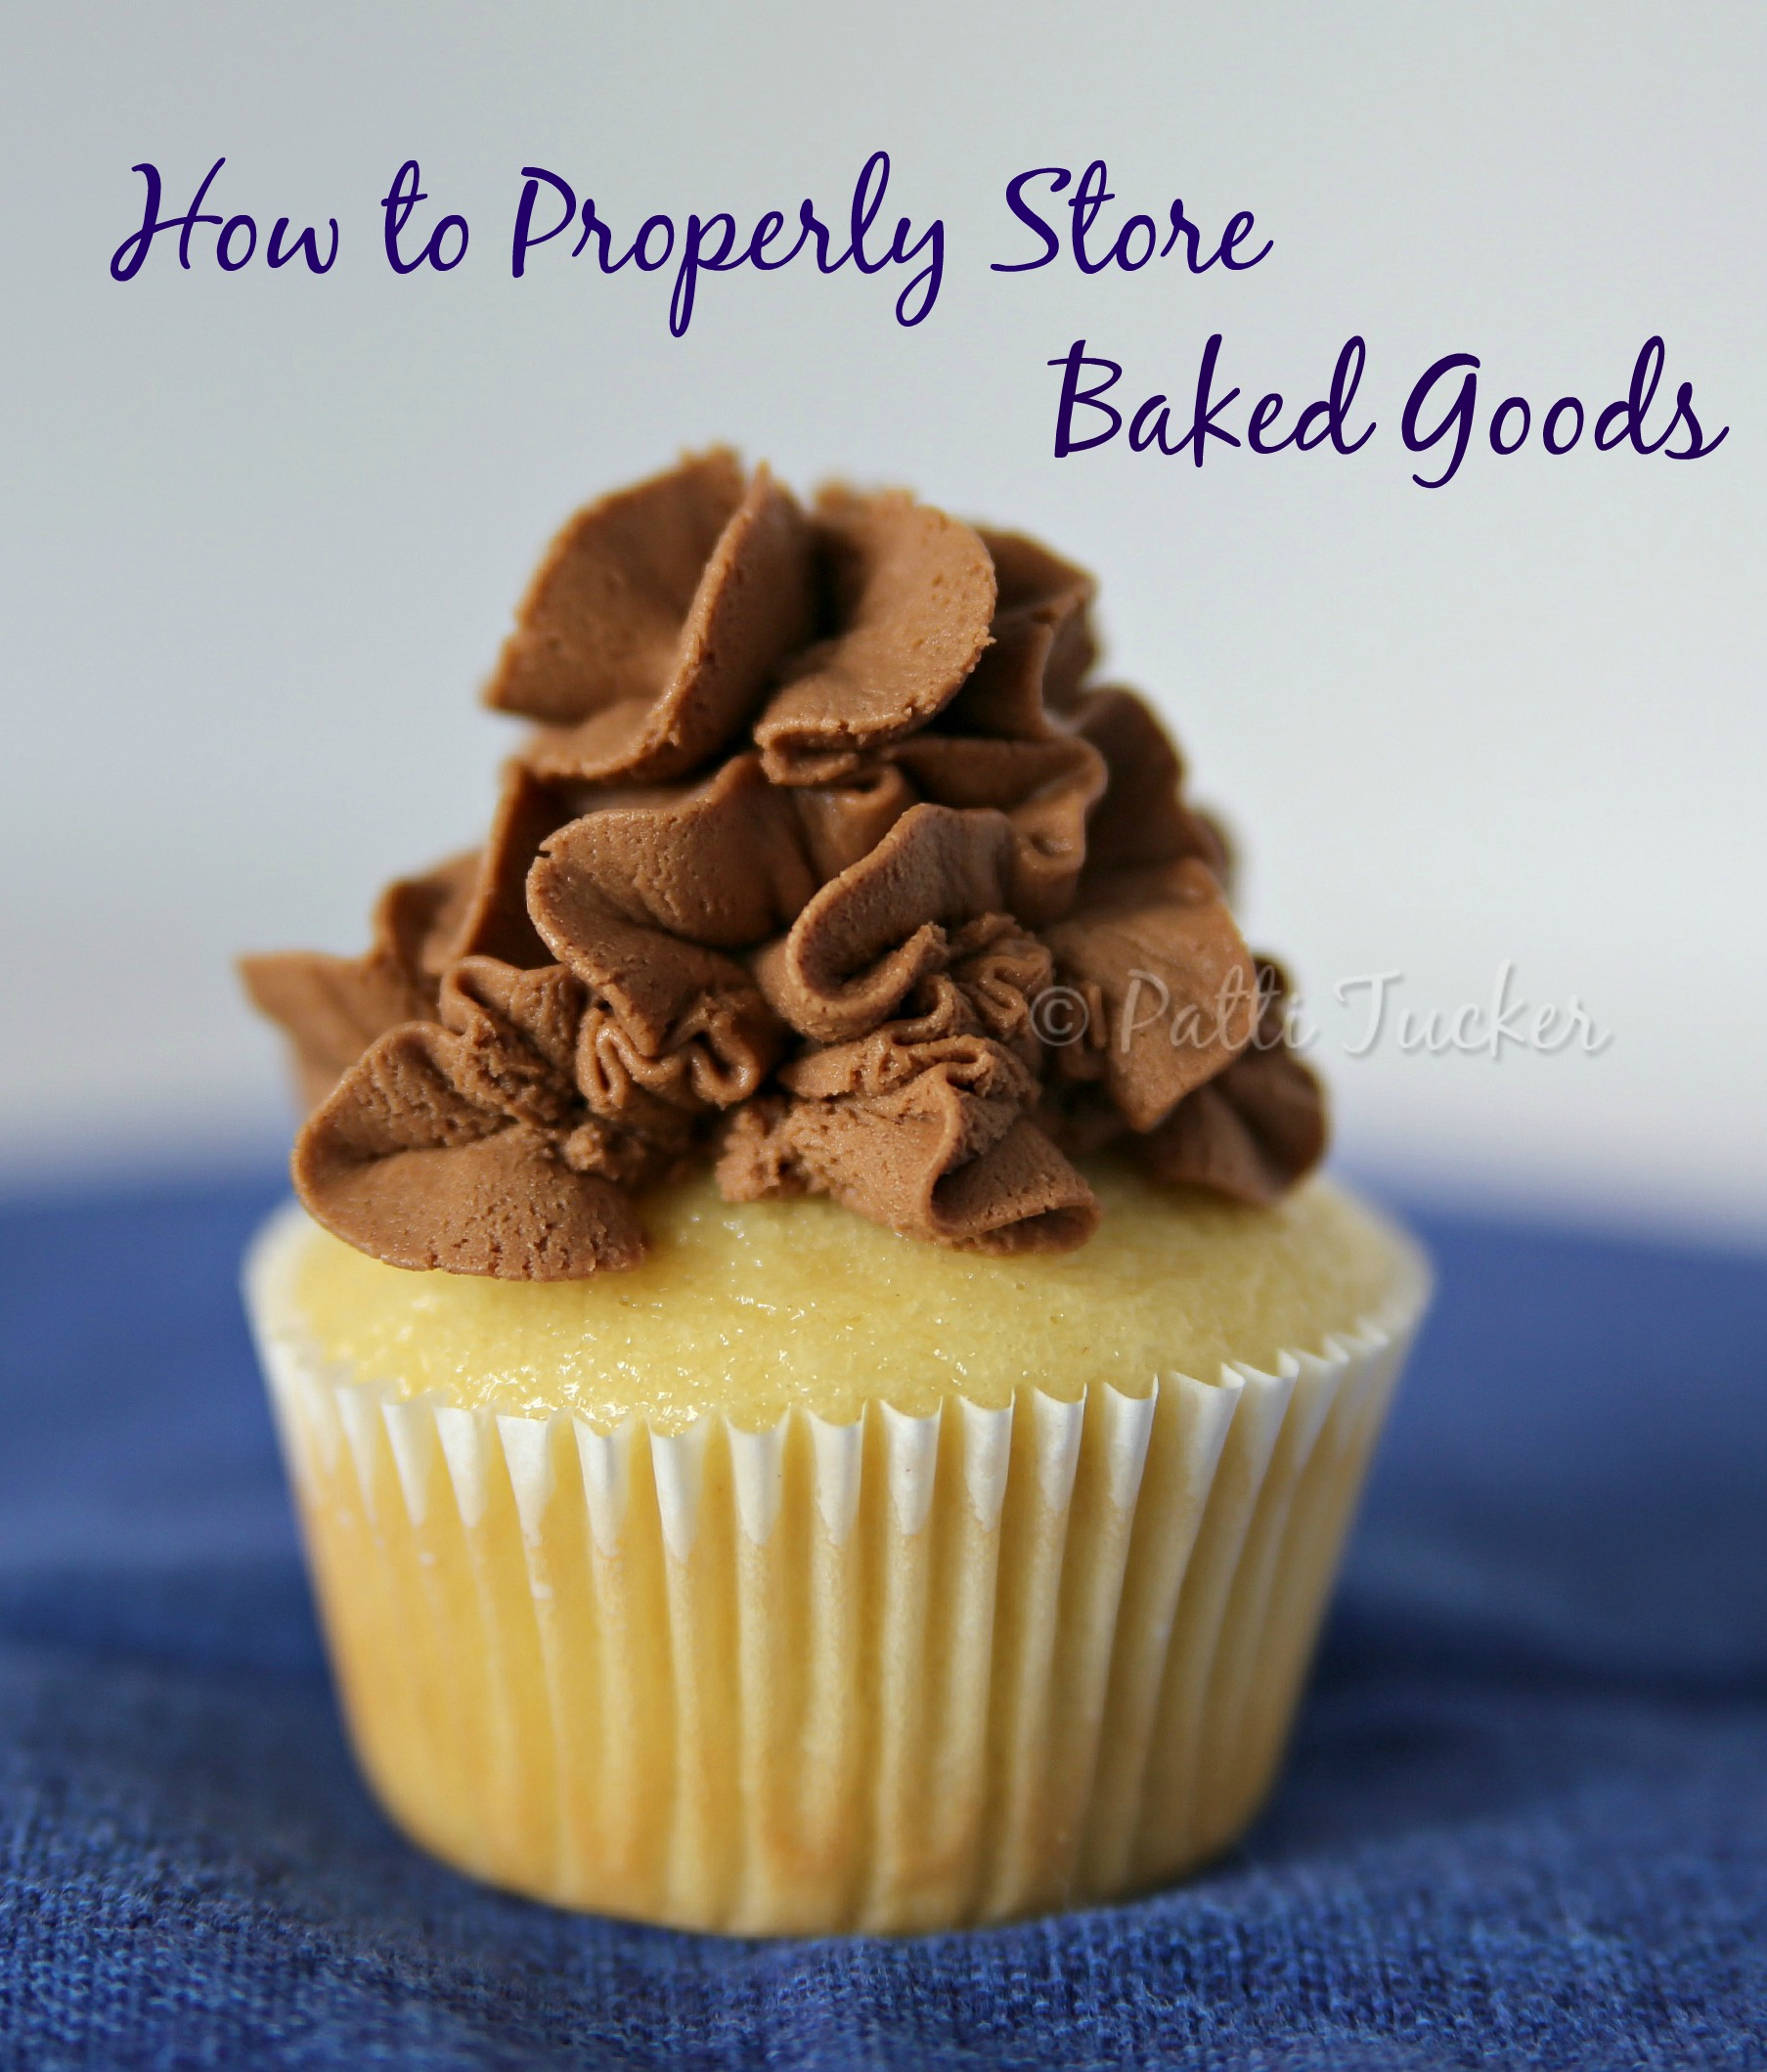 How to Properly Store Baked Goods